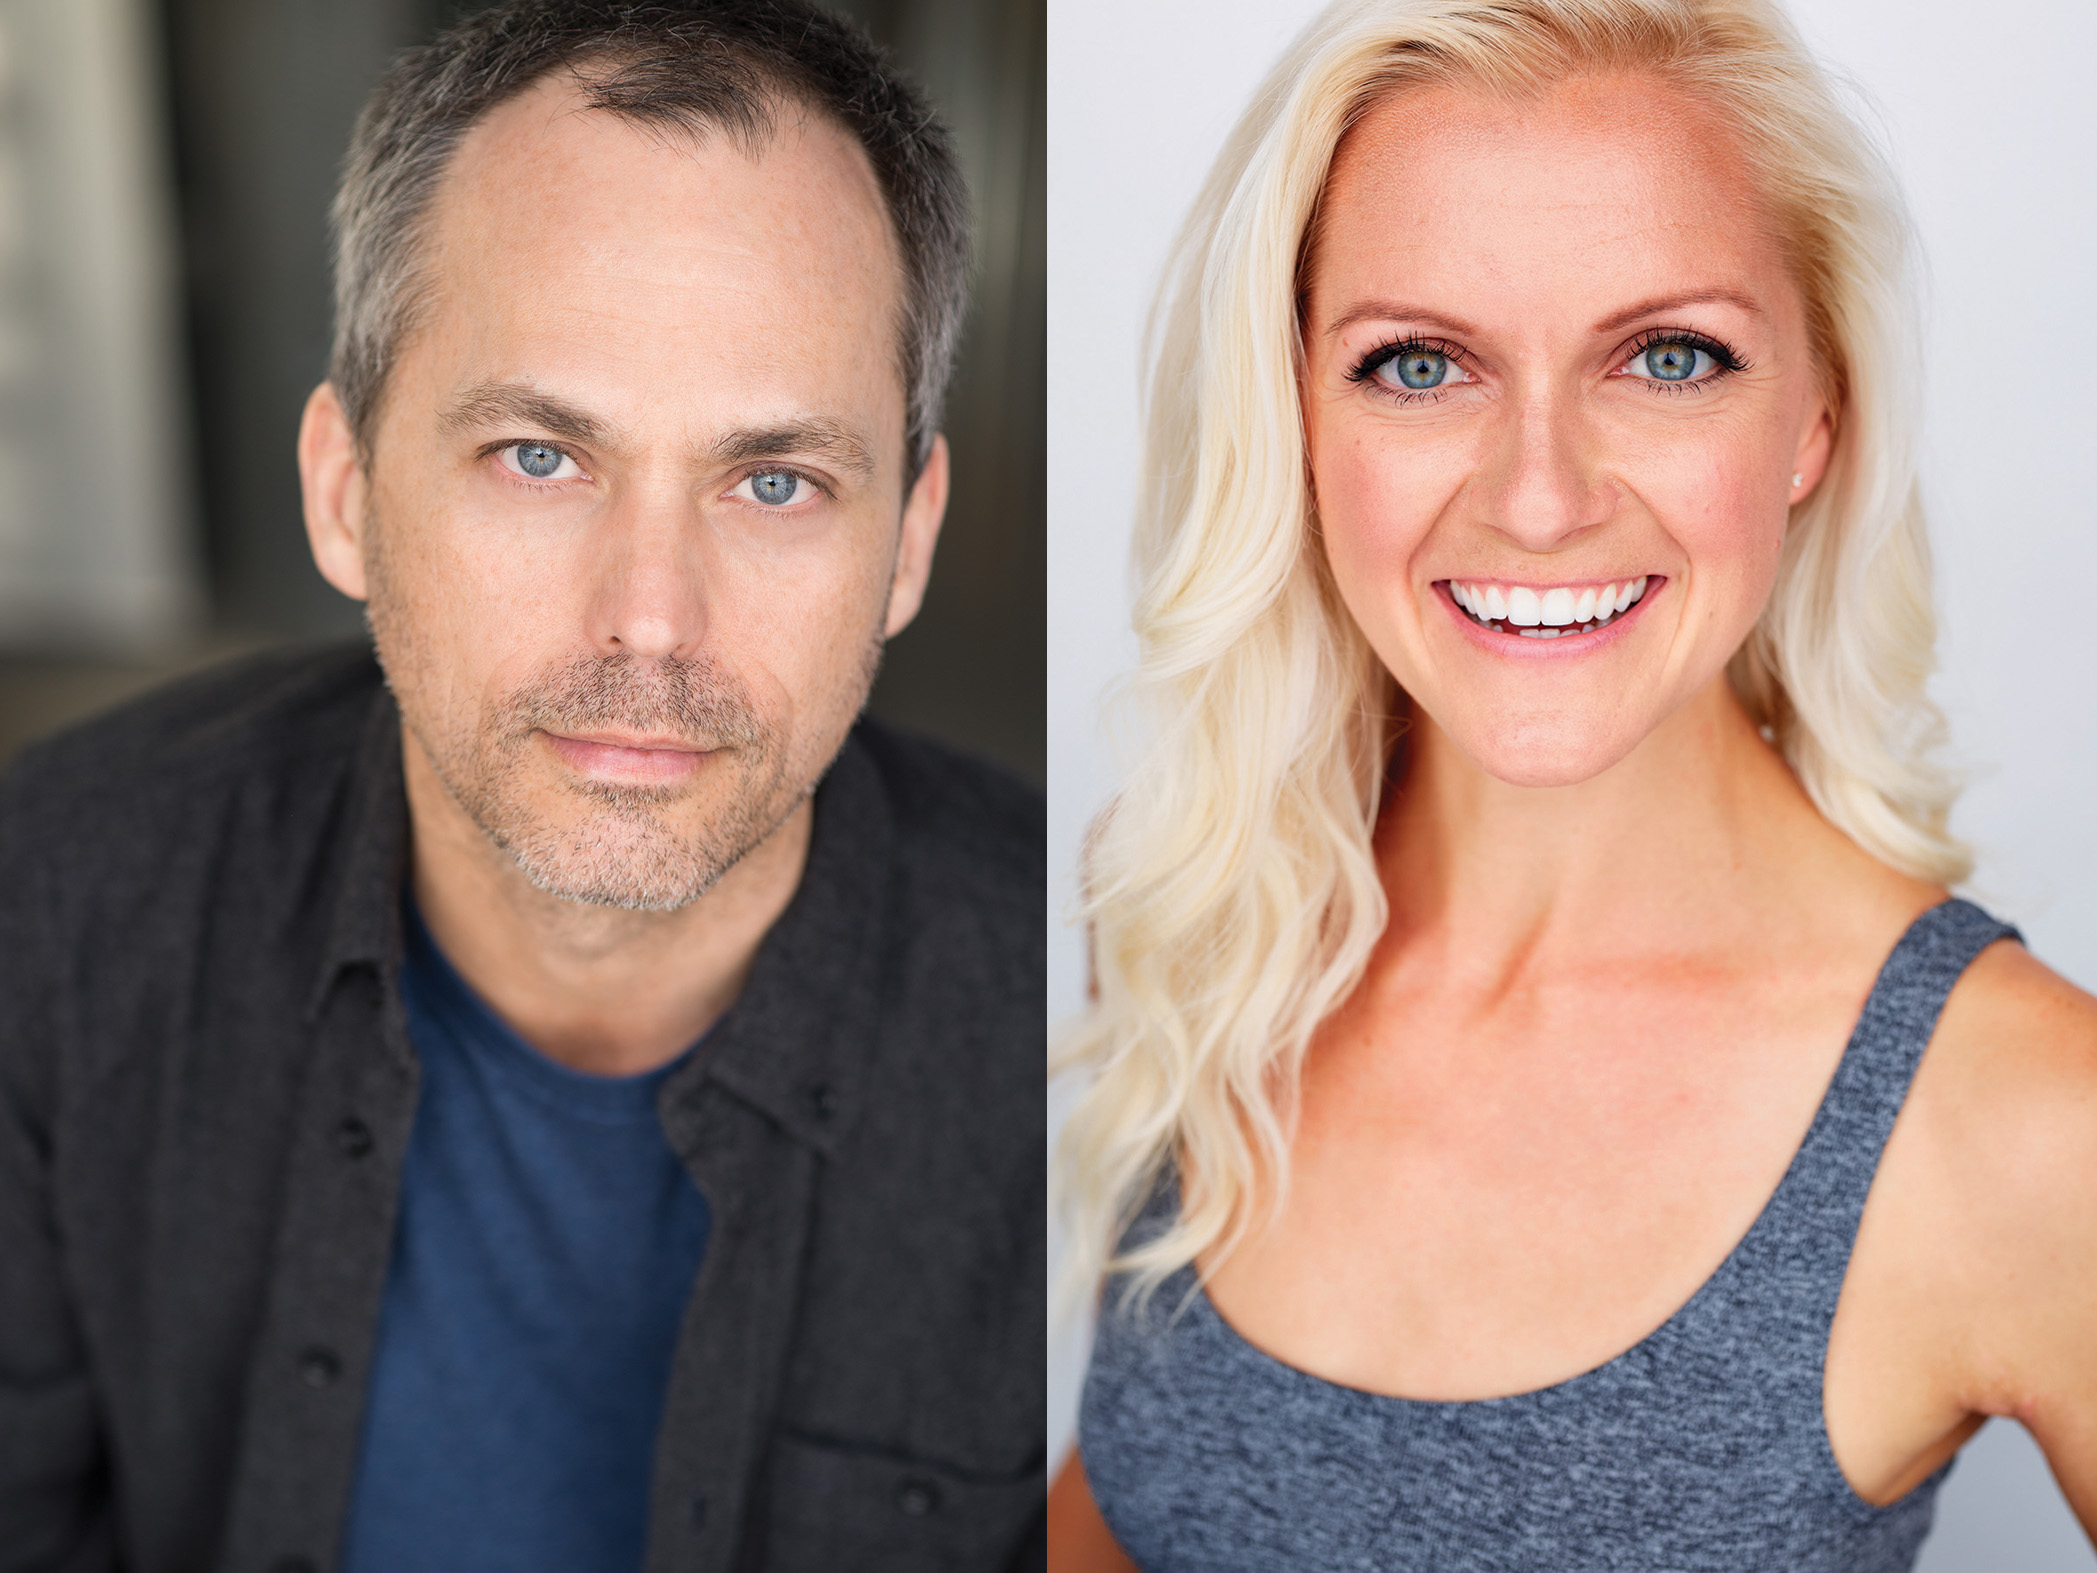 Steven Lane and Laura Cable